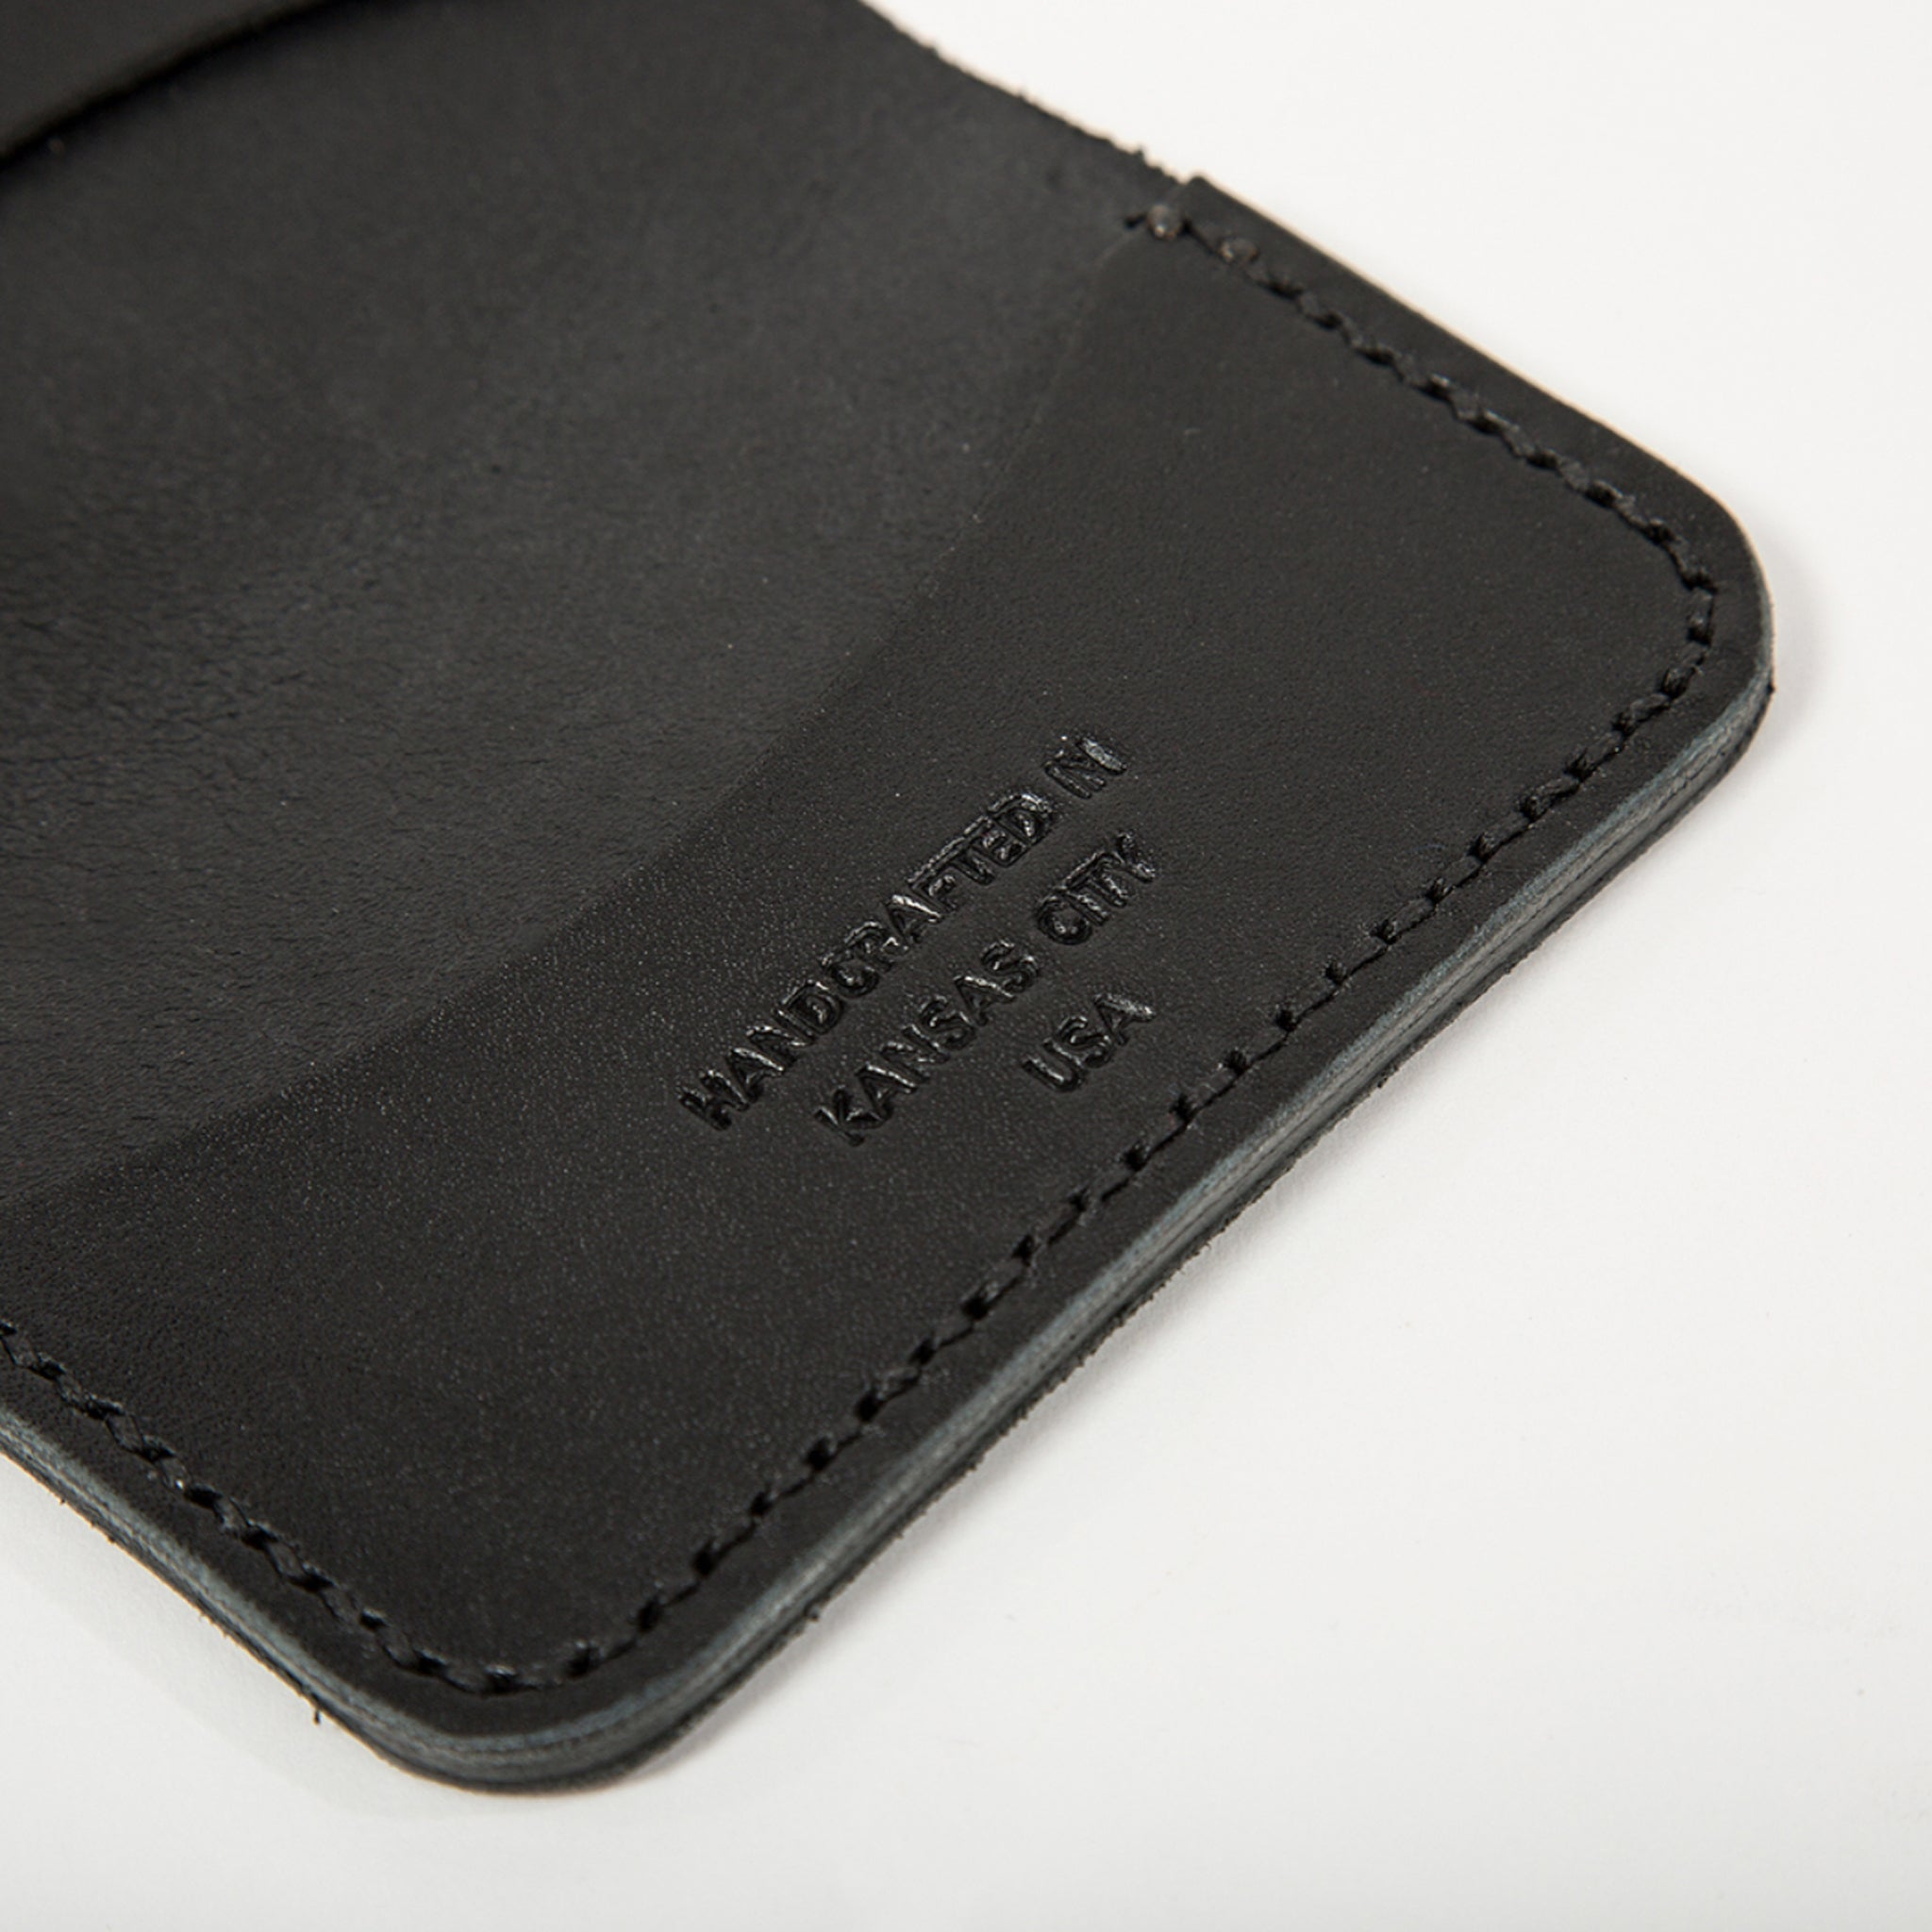 MADE MOBB X FOXTROT Leather Wallet